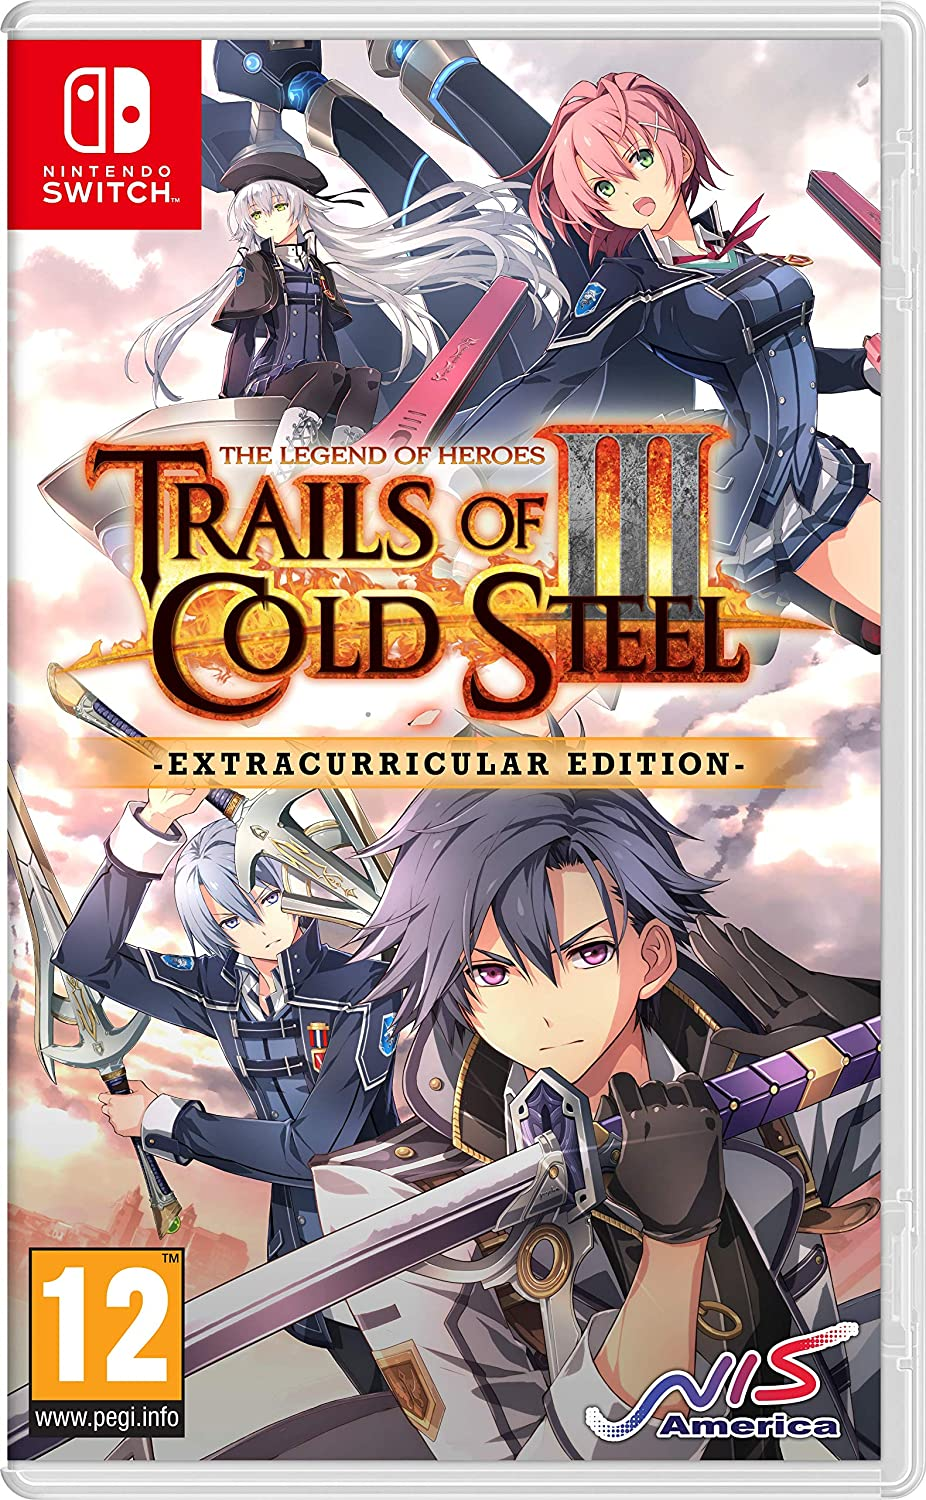 The Legend of Heroes : Trails of Cold Steel III Extracurricular Edition Nintendo Switch